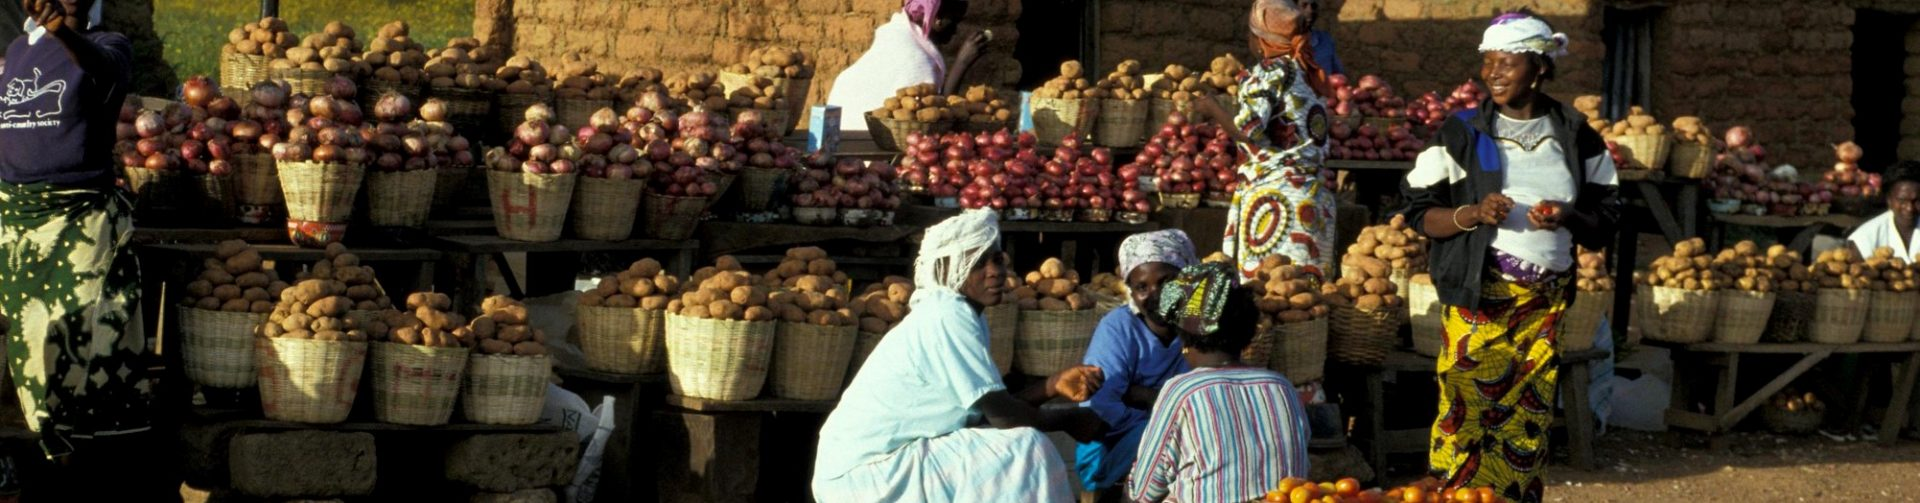 Paper: How will decisions made now affect Nigeria's future food system?